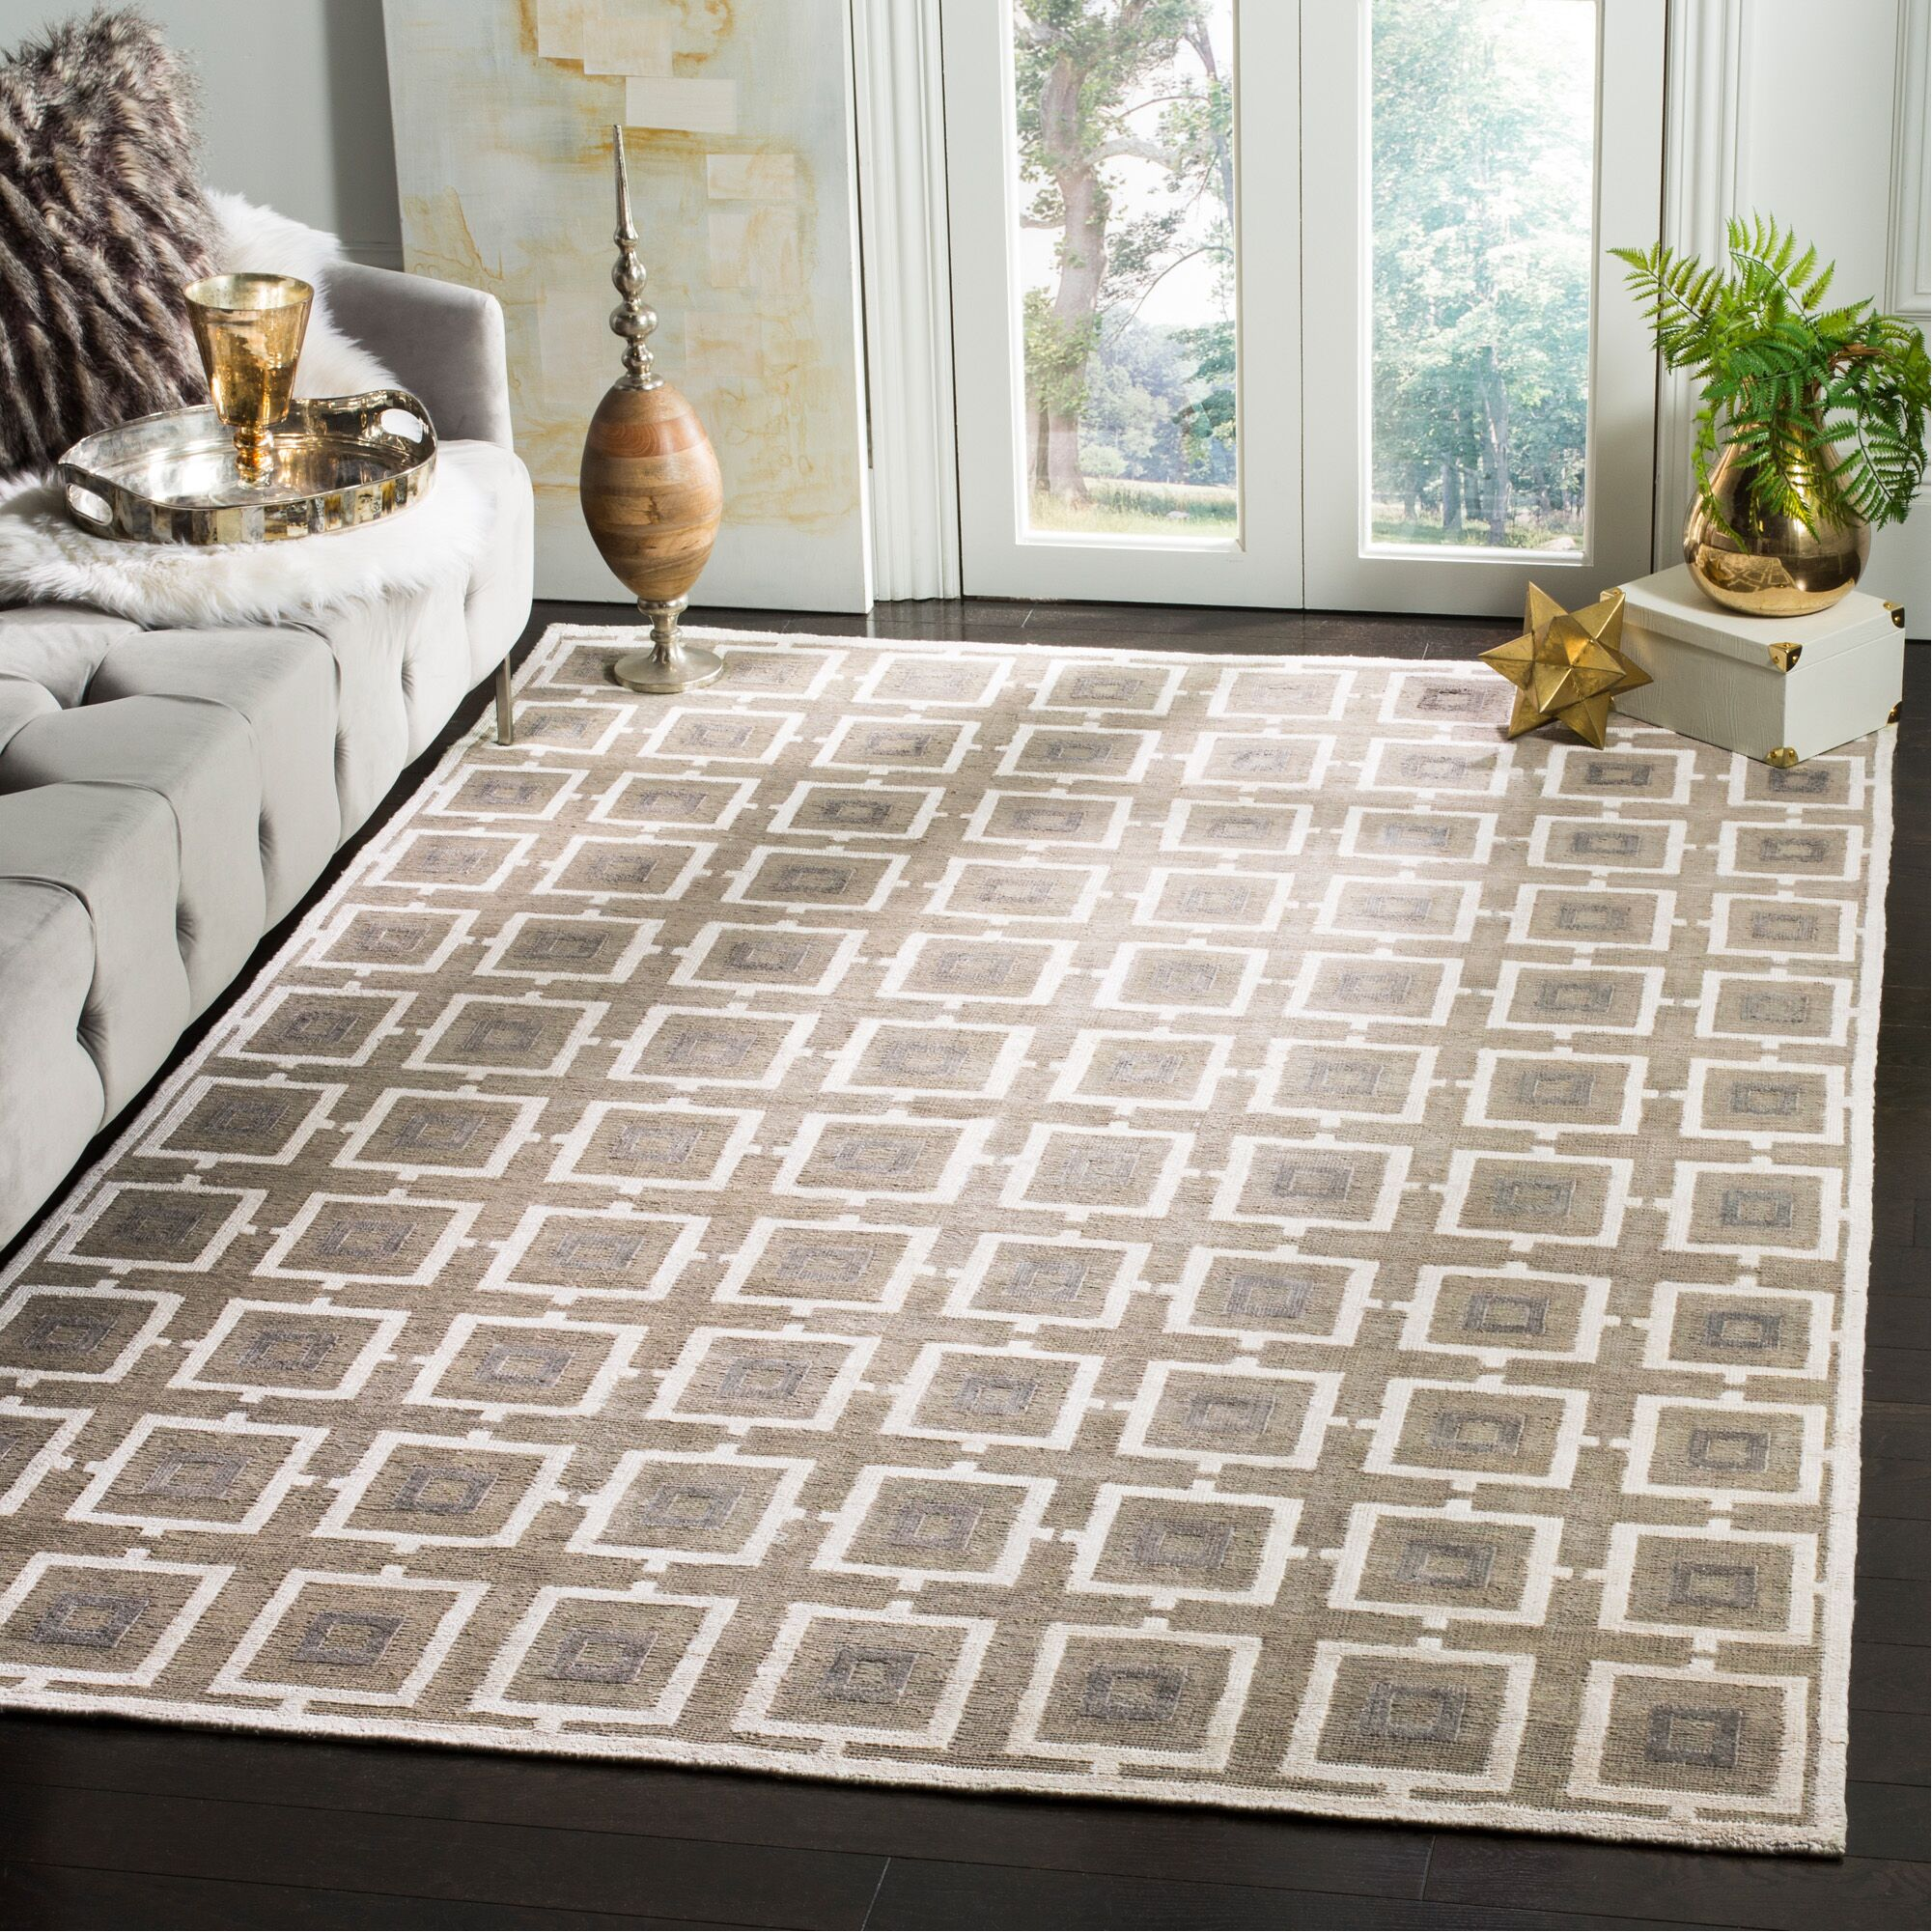 Paramkusham Tibetan Hand Knotted Gray/Beige Area Rug Rug Size: Rectangle 8' x 10'